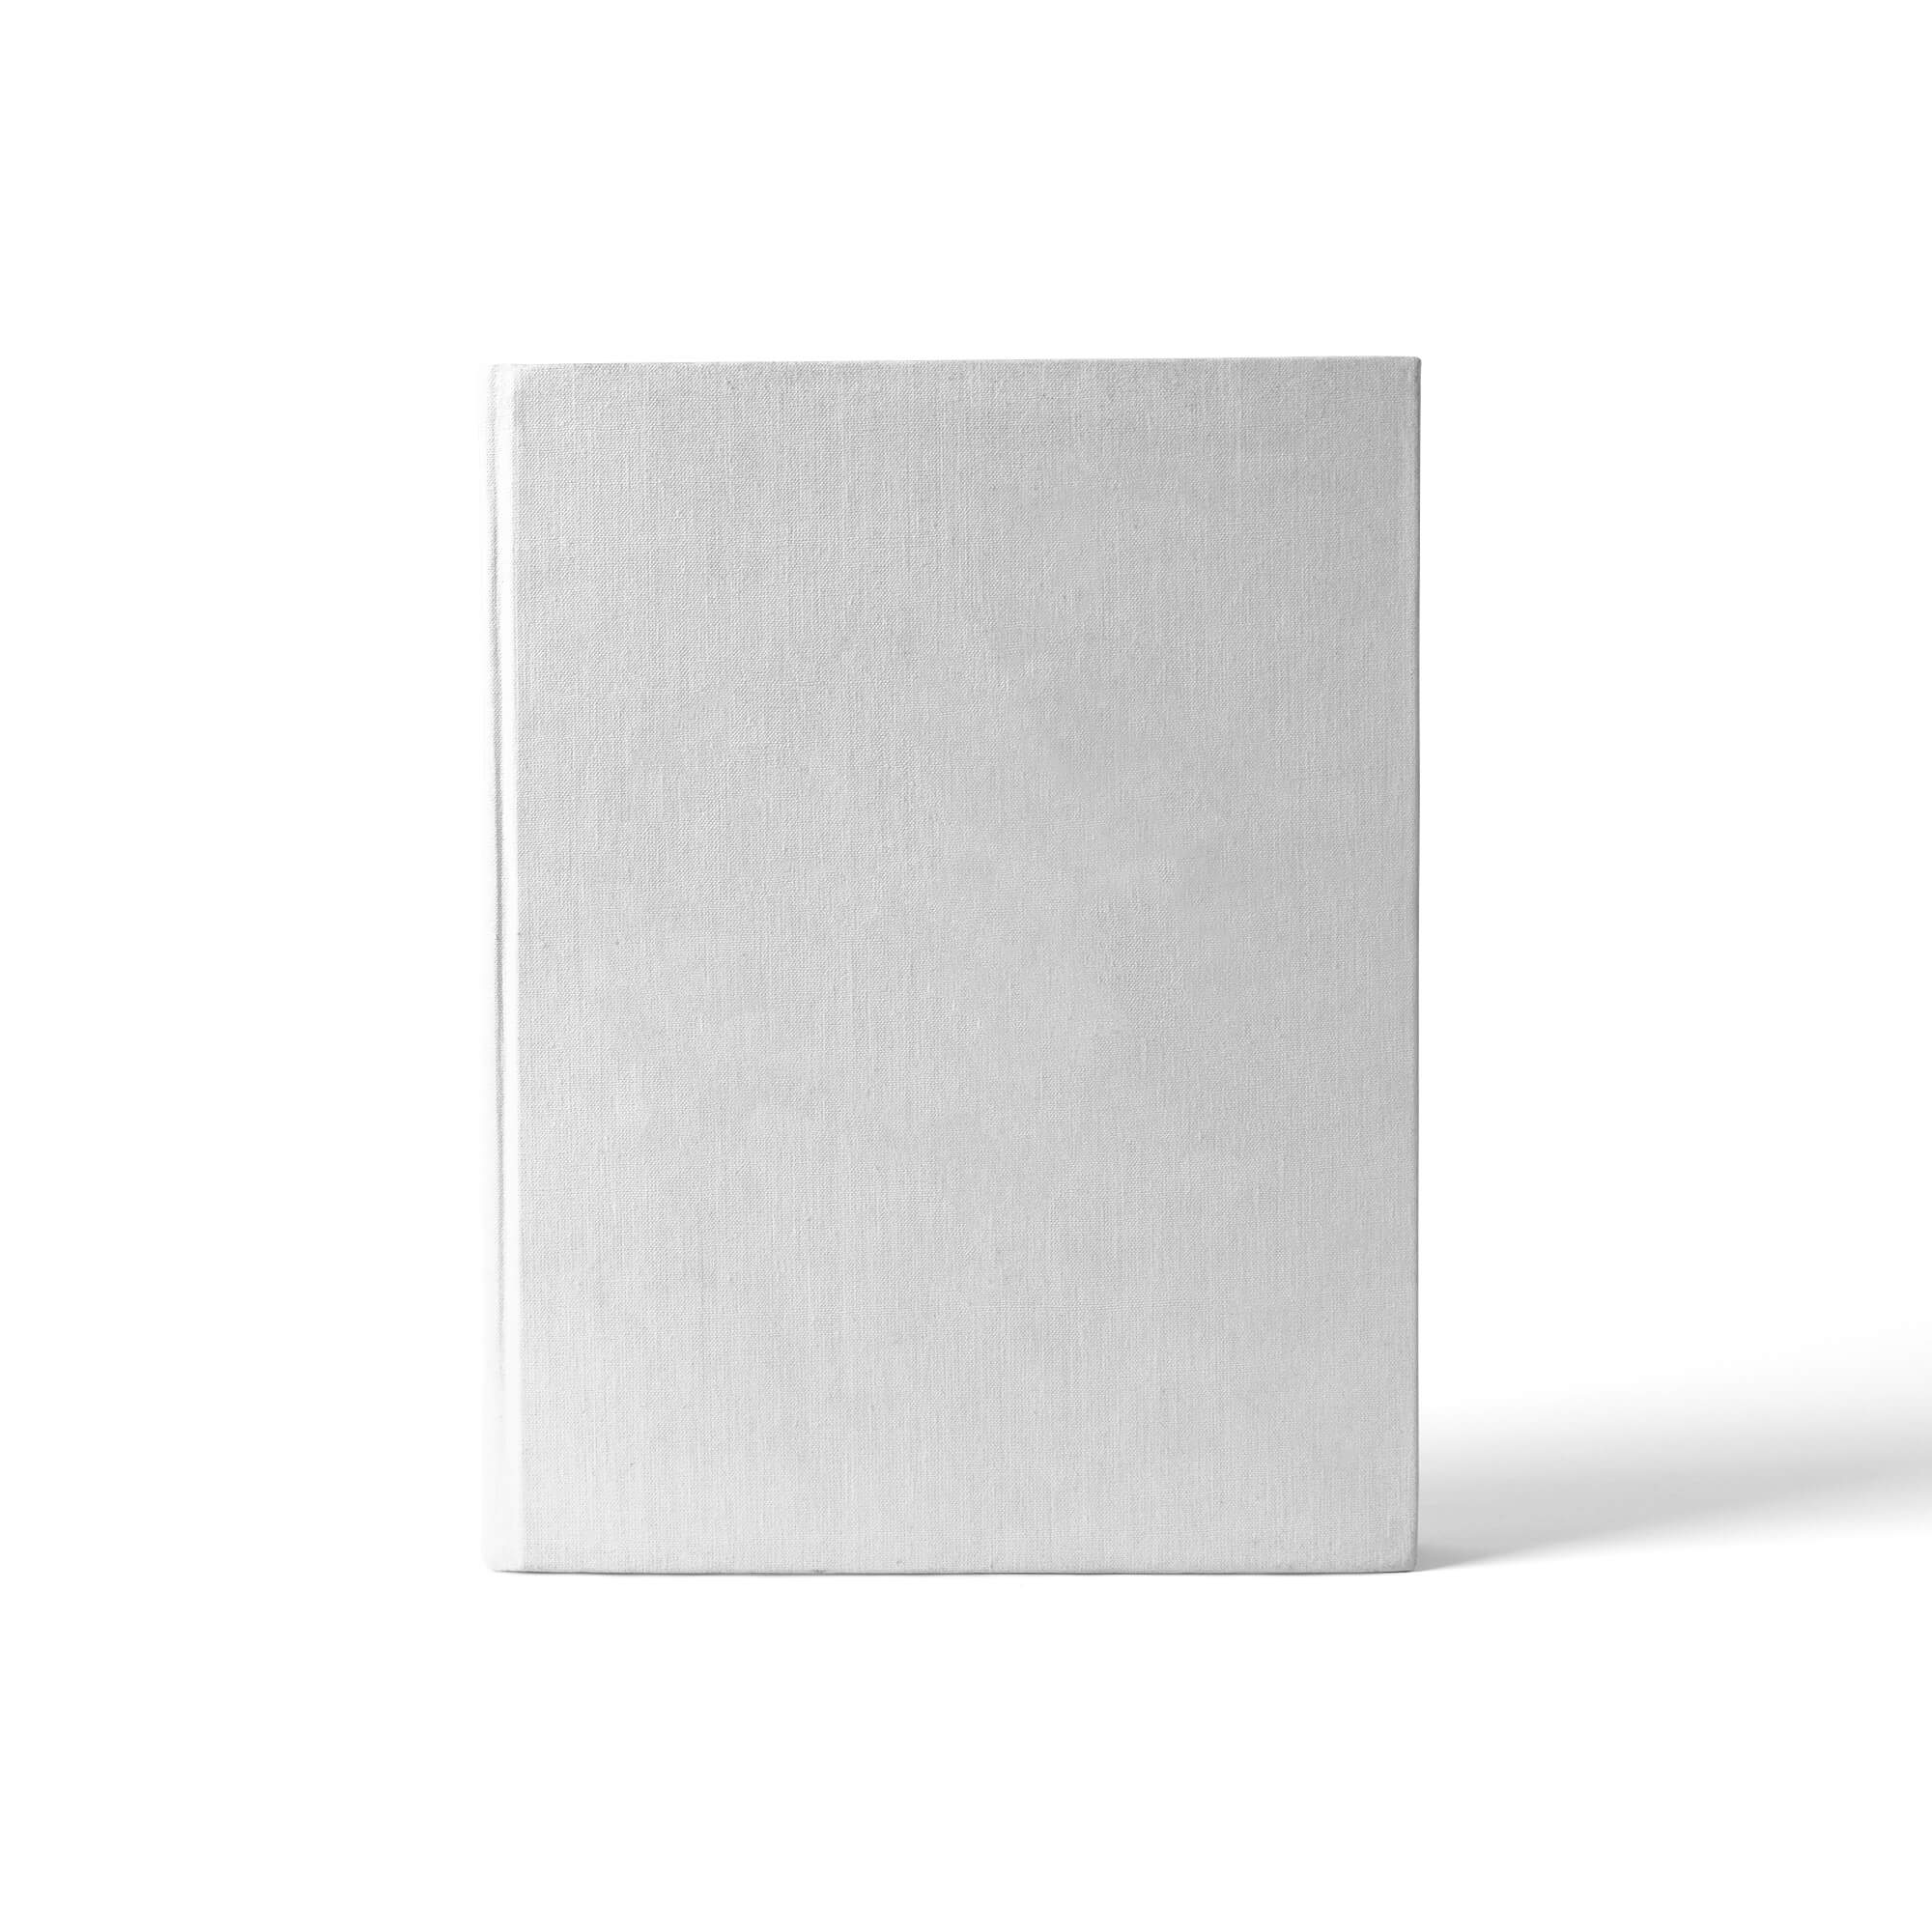 Blank Free Book Cover PSD Mockup Template